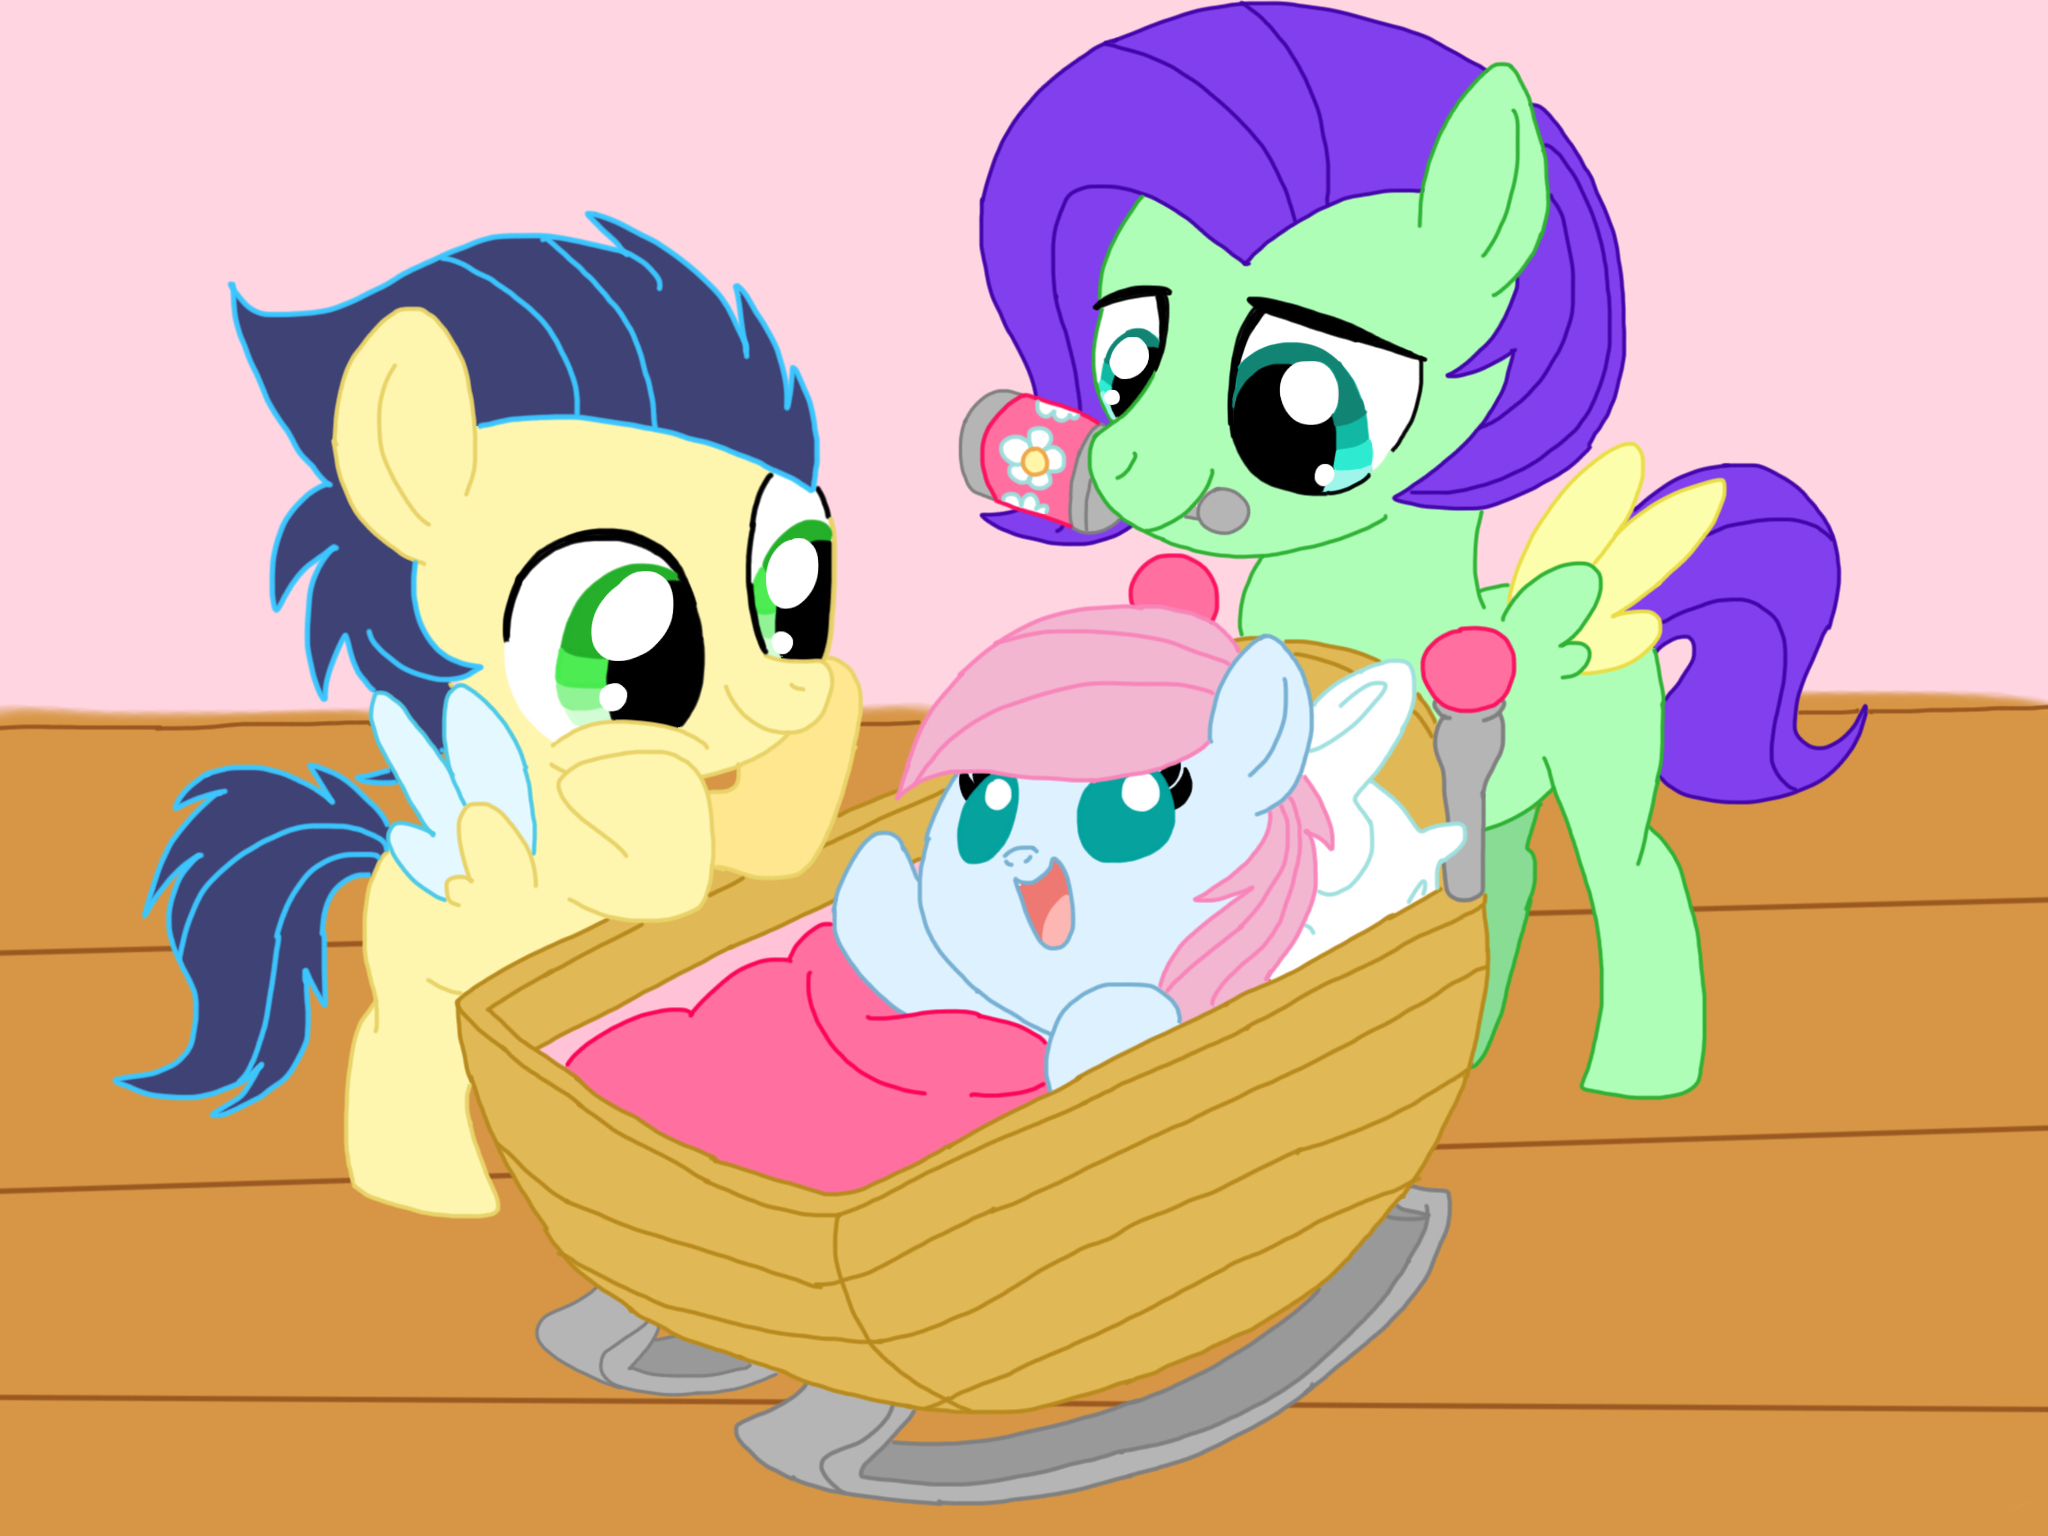 Mlp NG: Meet your new sister by Smileverse on DeviantArt